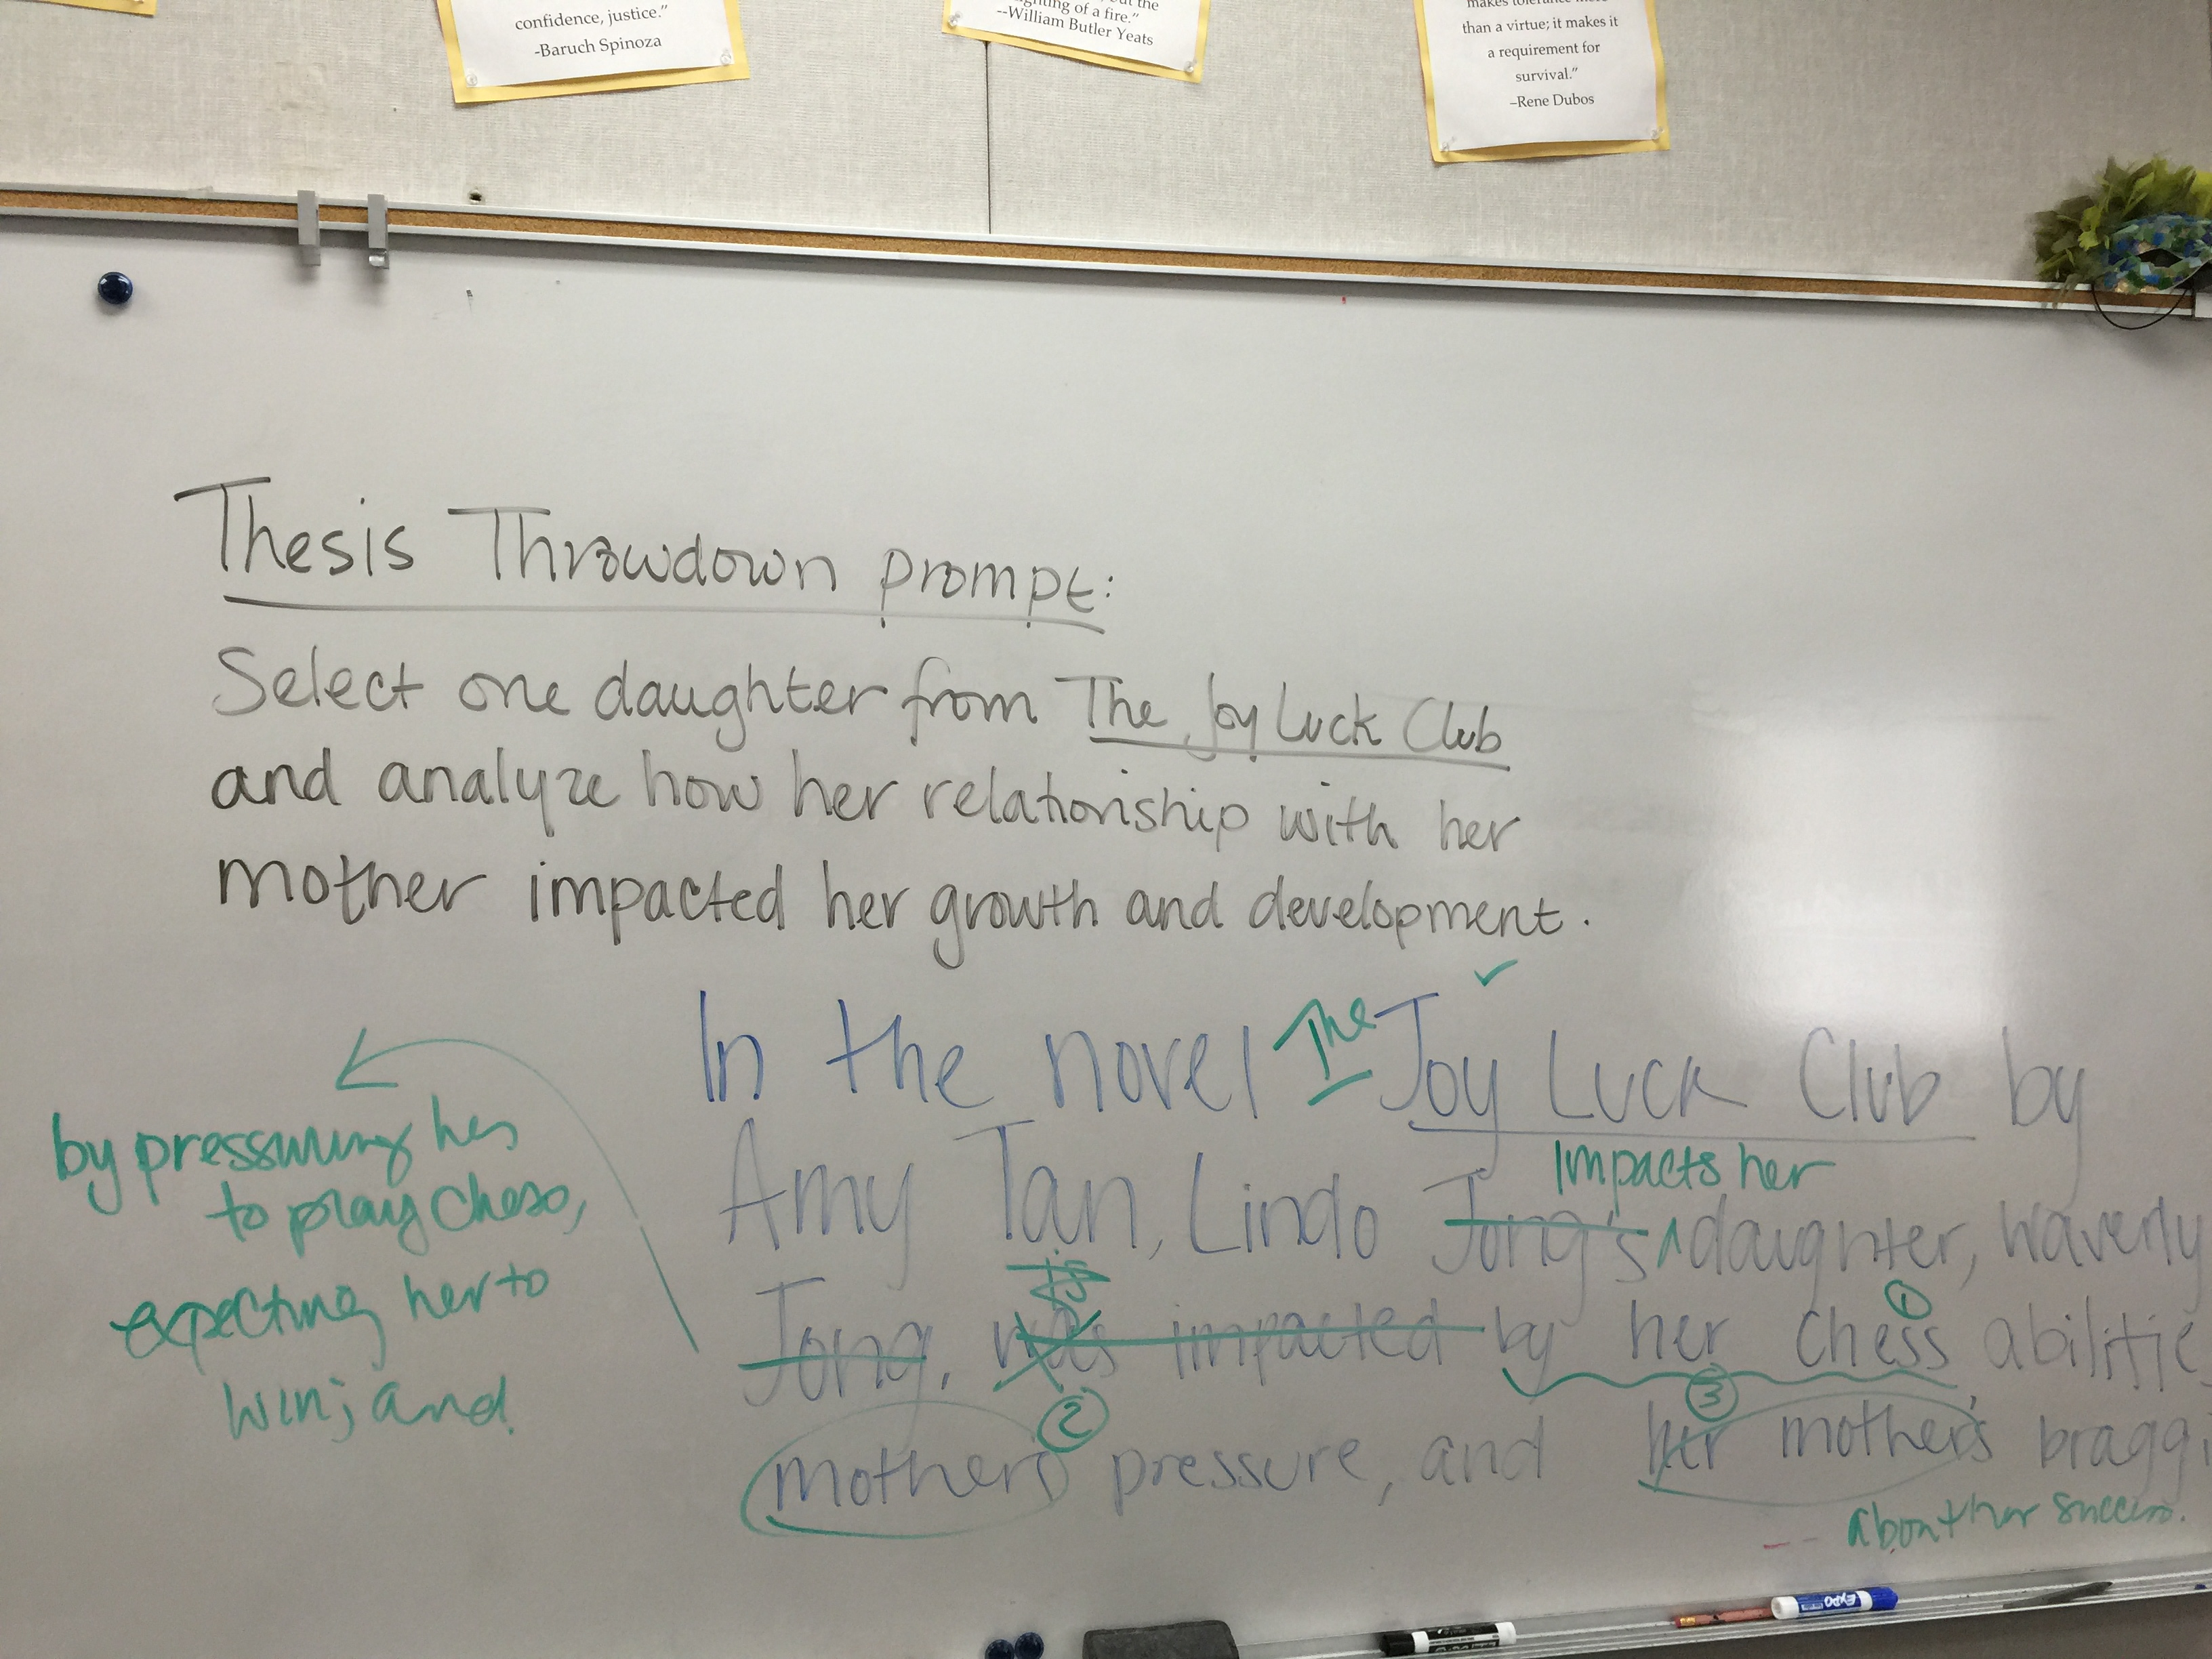 thesis statement throwdown 8219